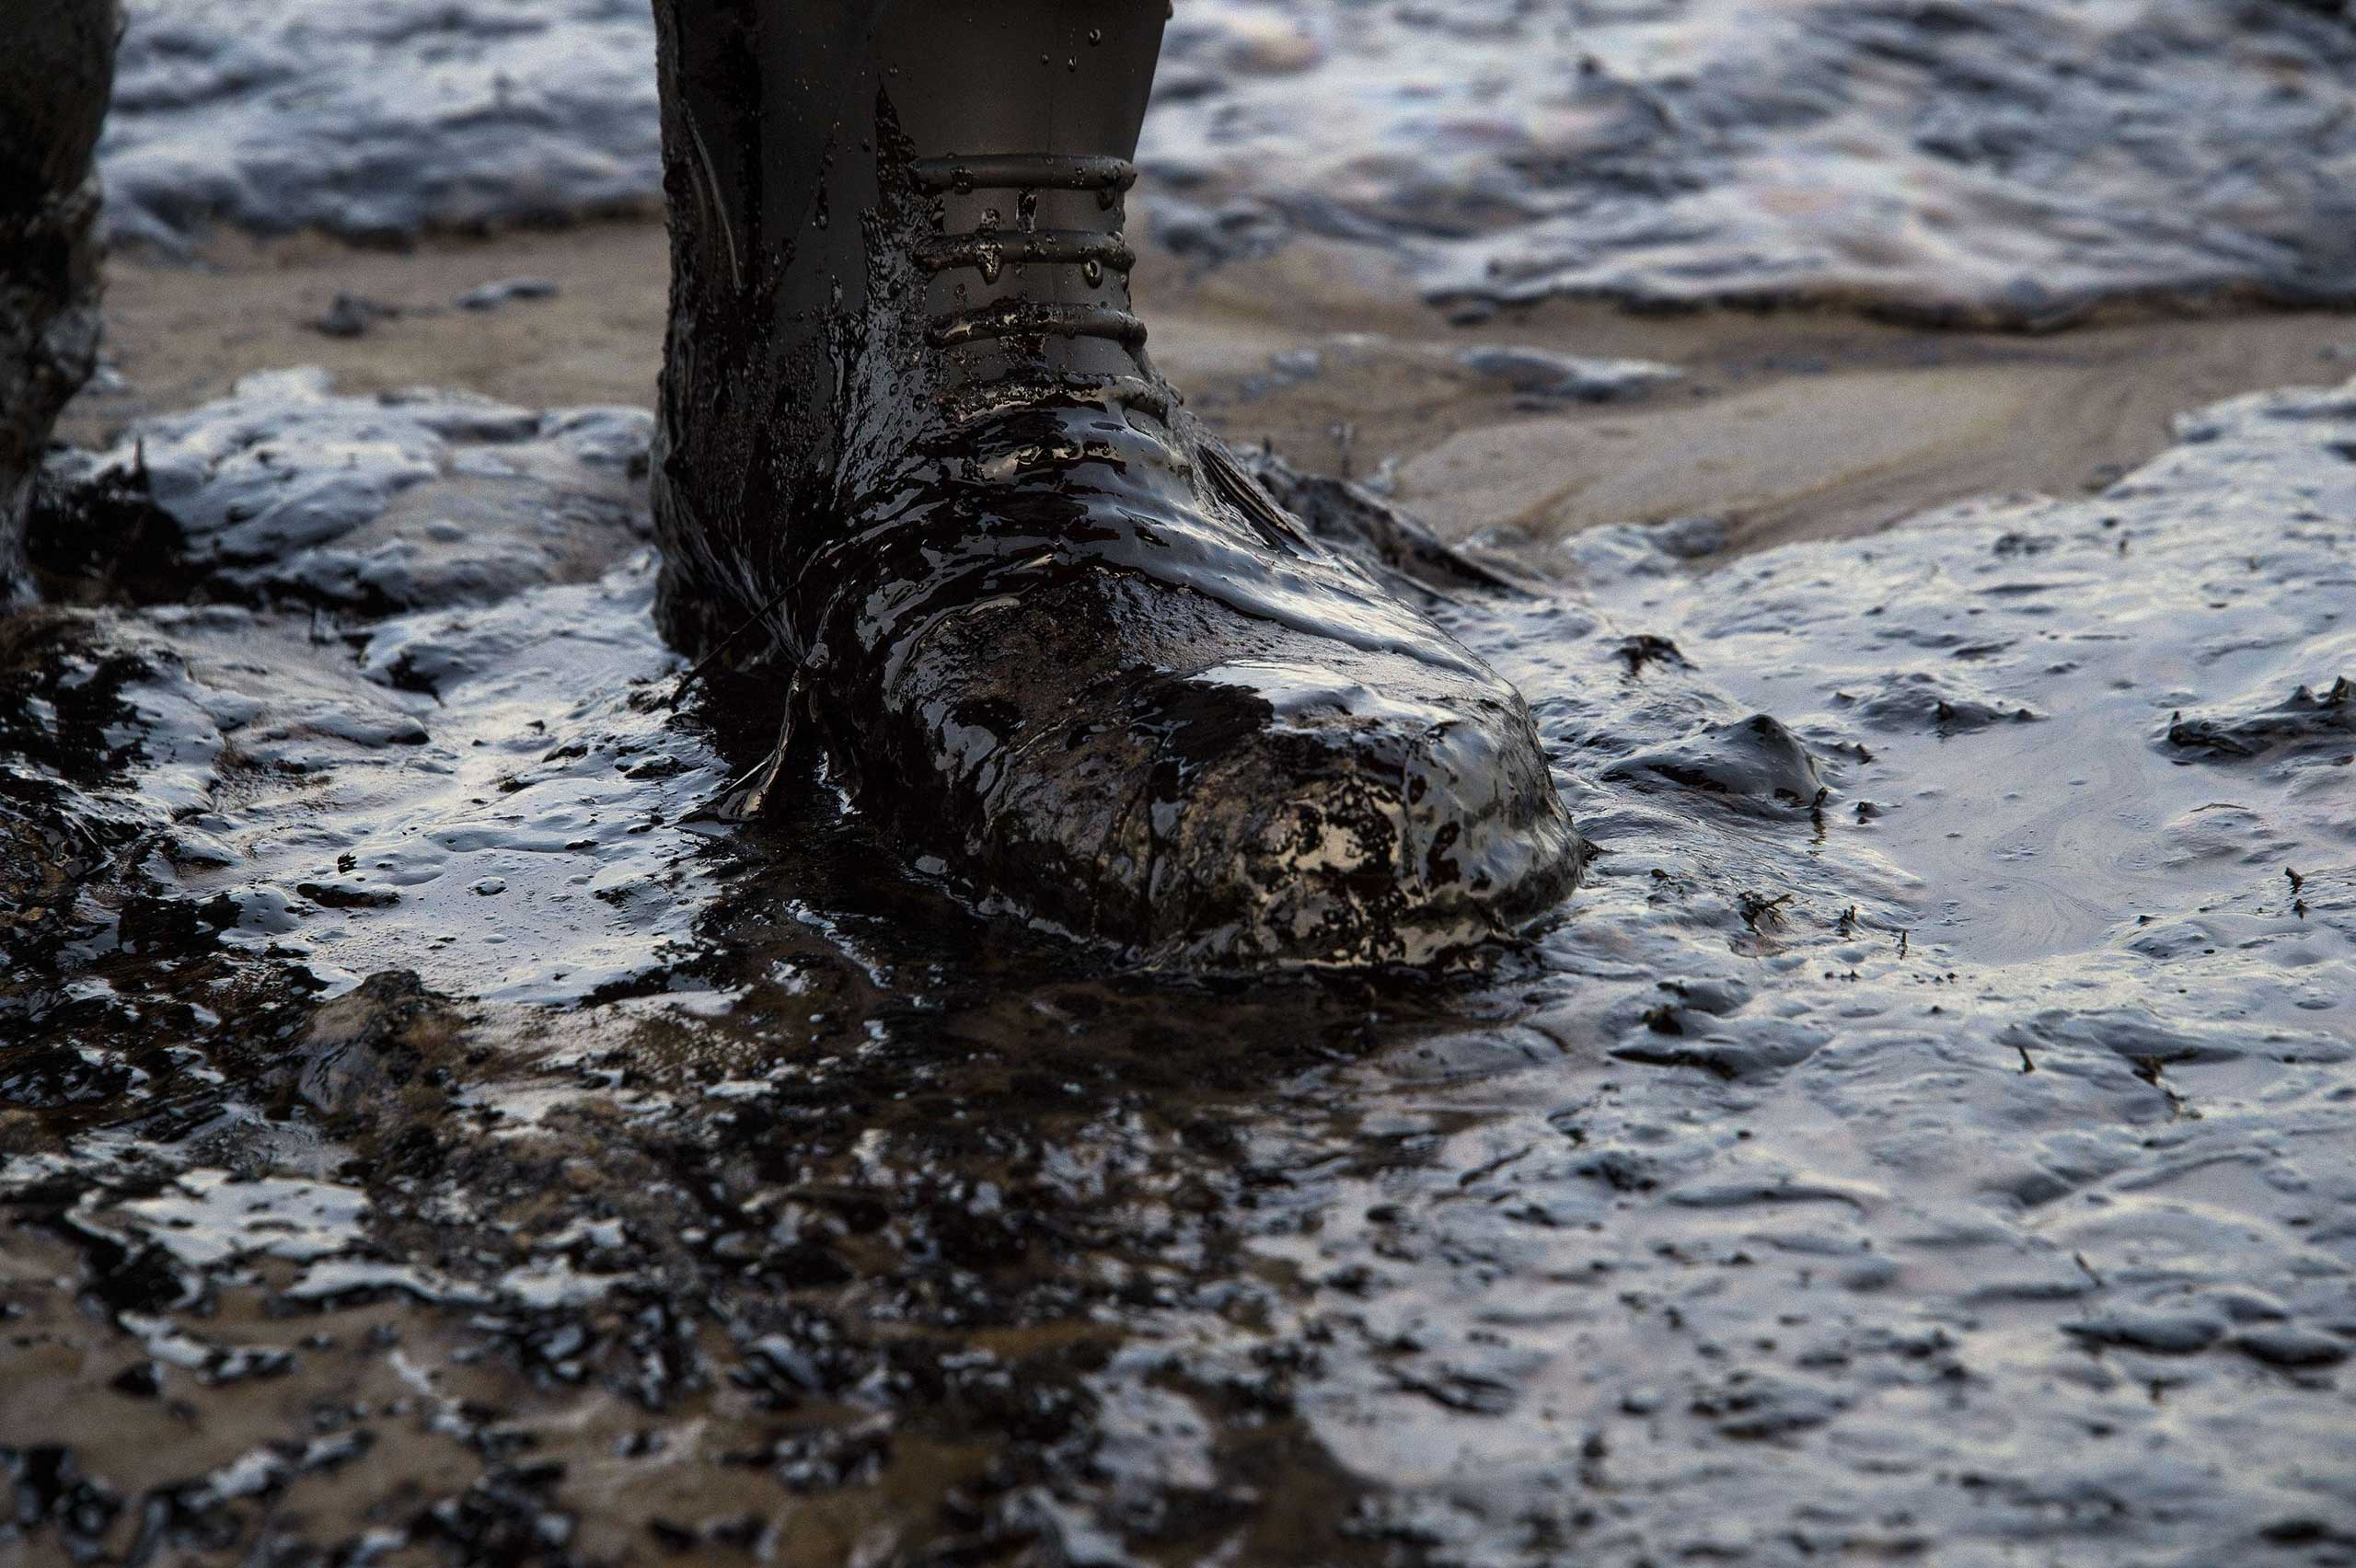 Oil covers a local resident's boot at Refugio State Beach in Goleta, Calif. on May 19, 2015.